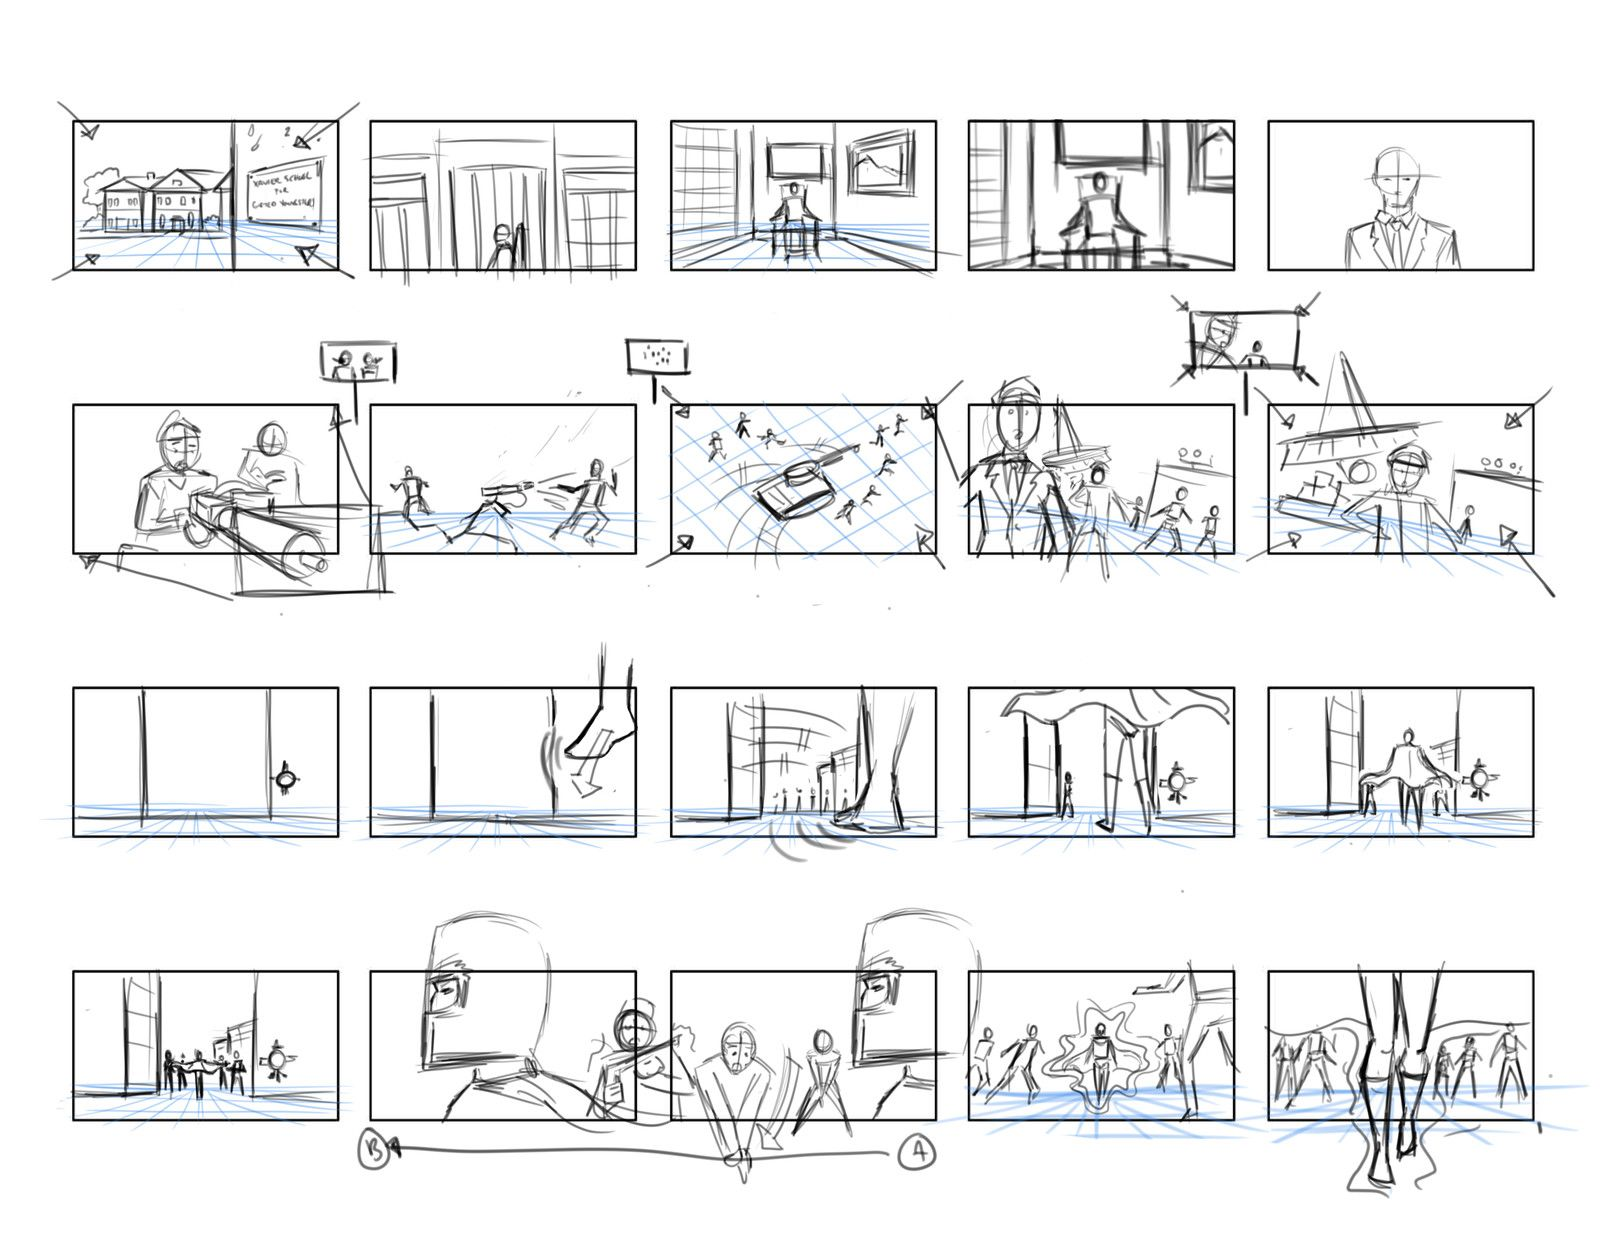 Storyboard Thumbnails Fernando Servin On Artstation At Https